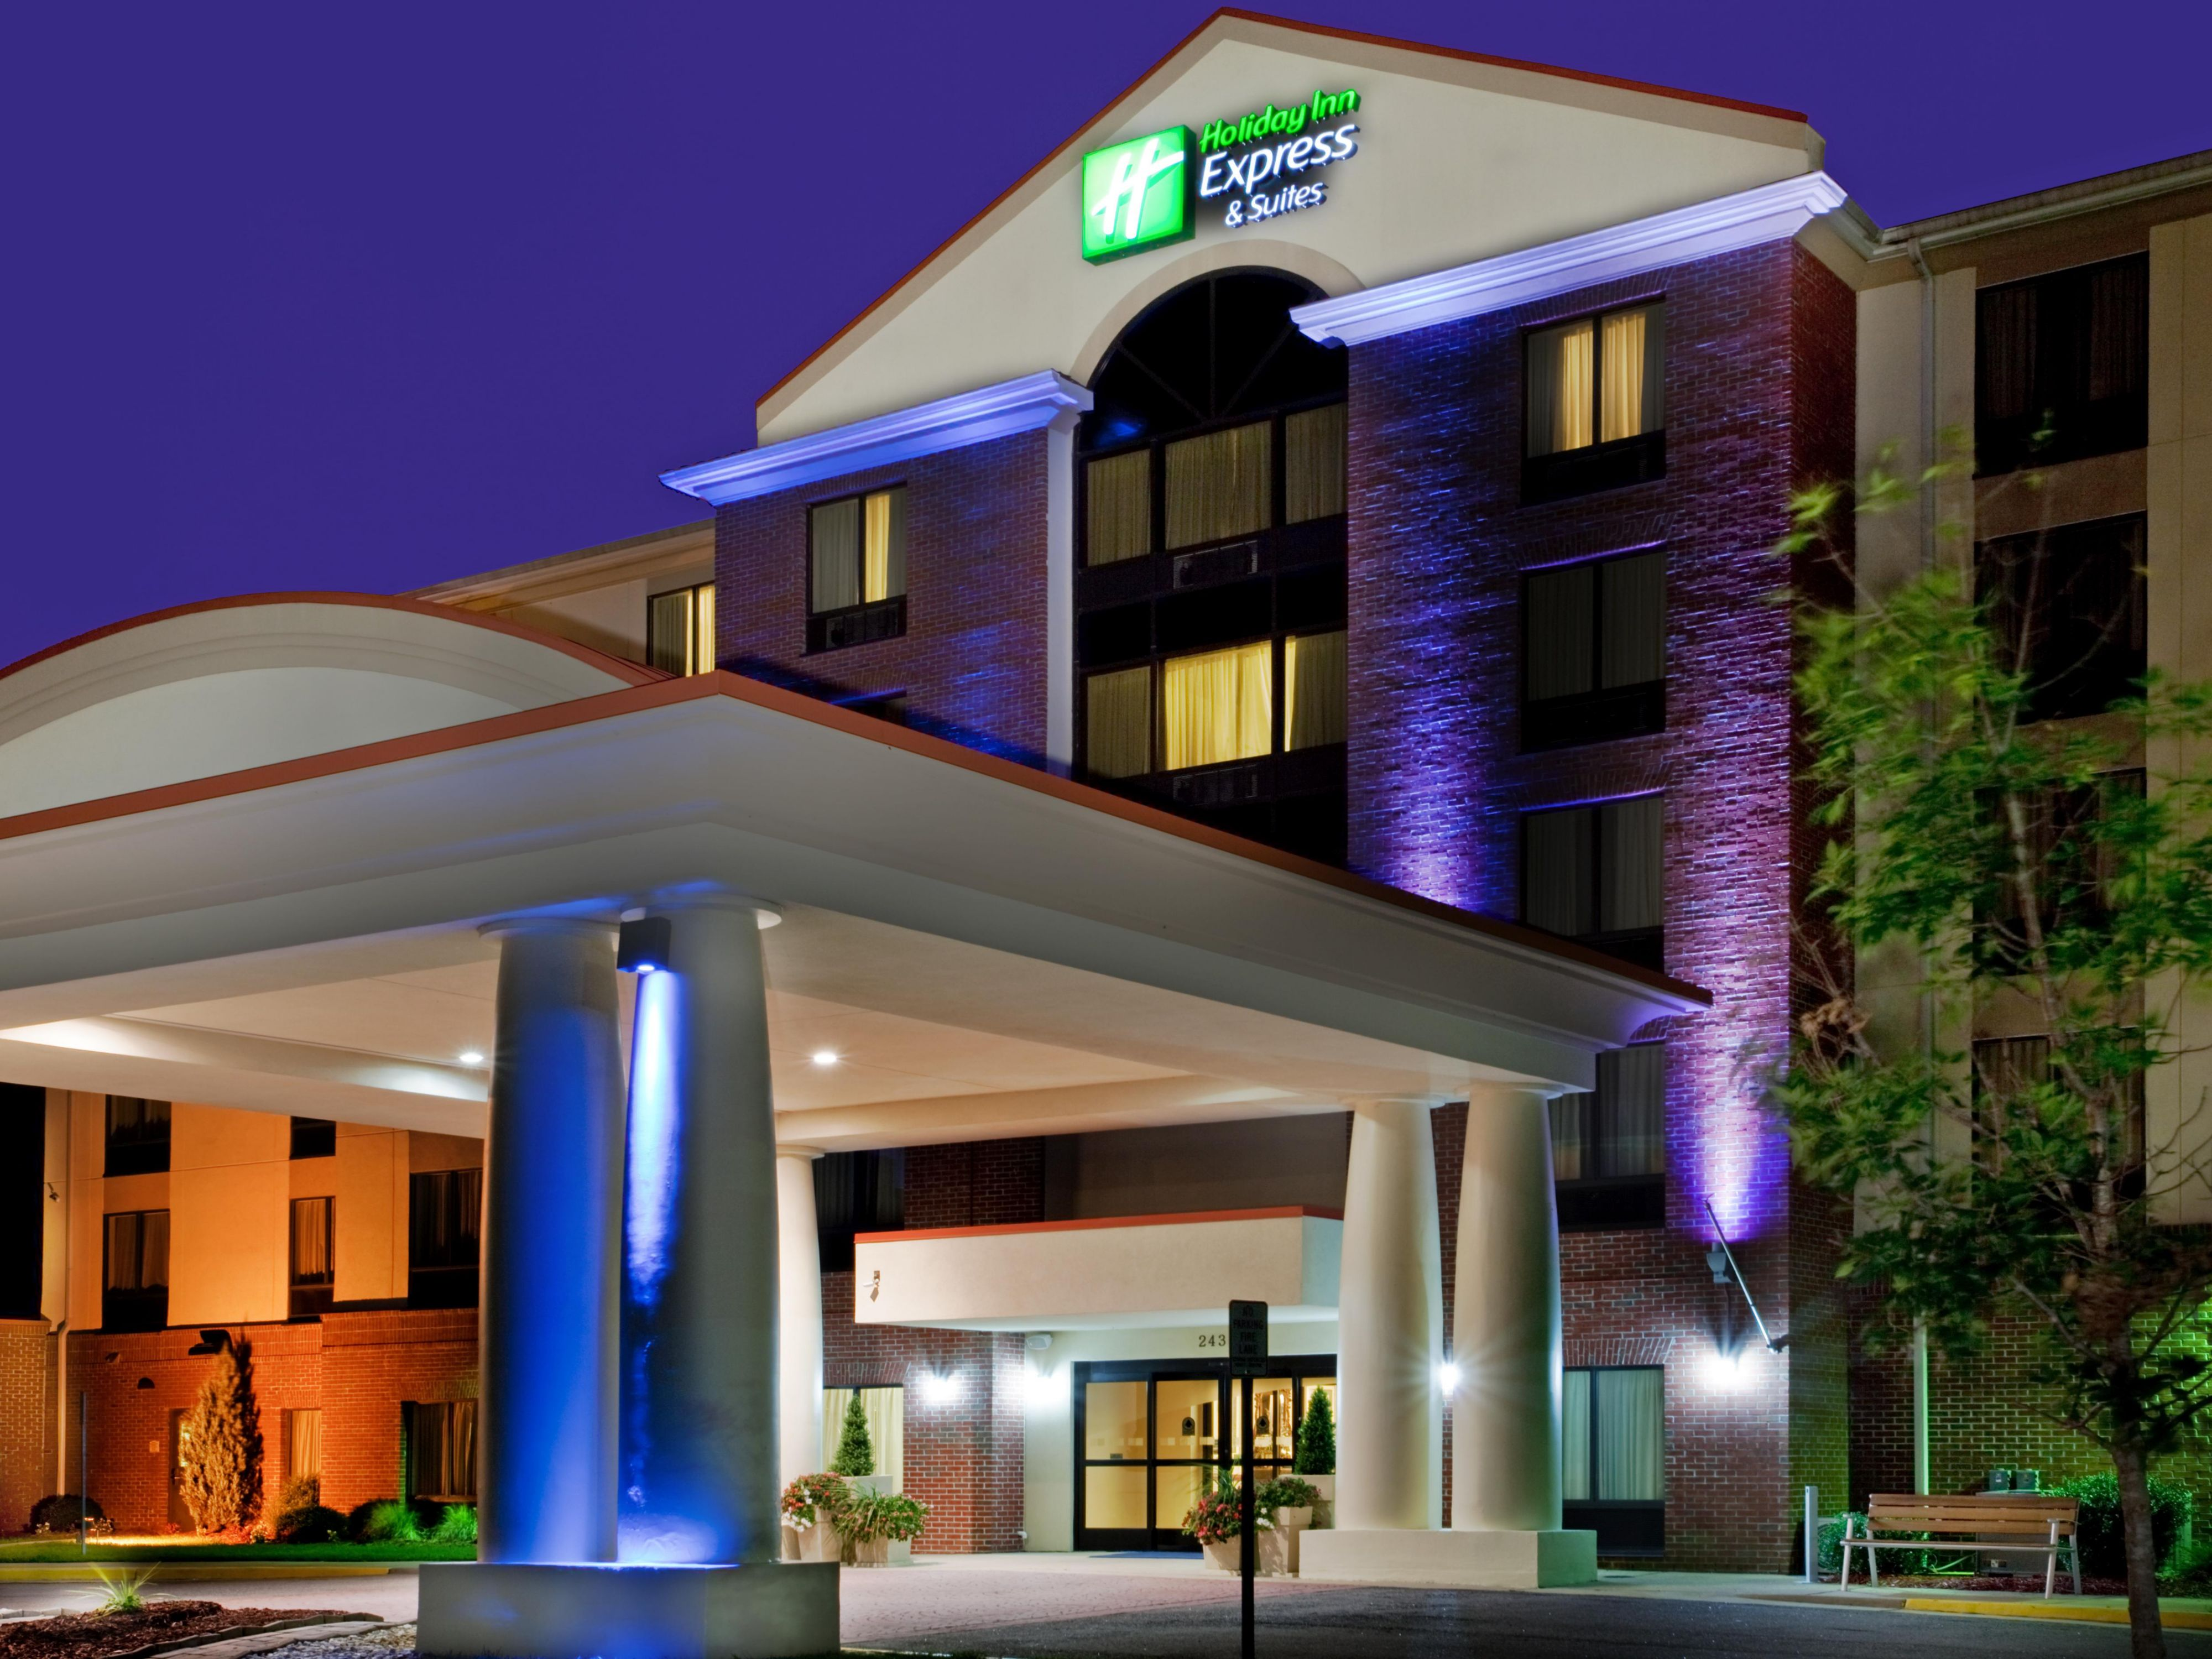 holiday inn express and suites chesapeake 2532041136 4 3. Black Bedroom Furniture Sets. Home Design Ideas